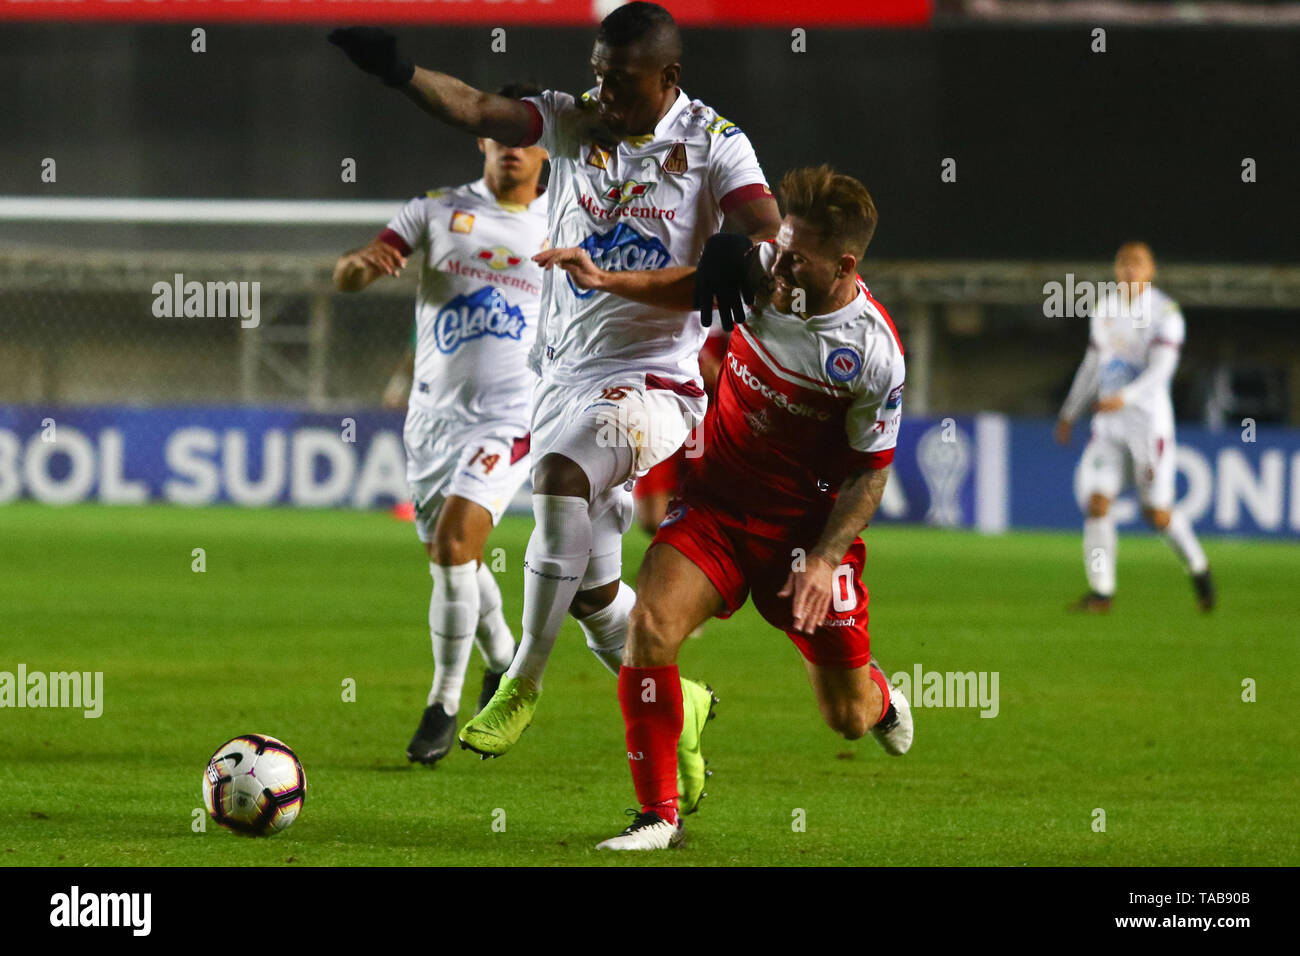 BUENOS AIRES, 23.05.2019: Alexis Mac Allister during the match between Argentinos Juniors and Deportes Tolima for the 2nd round of Conmebol Sudamerica Stock Photo